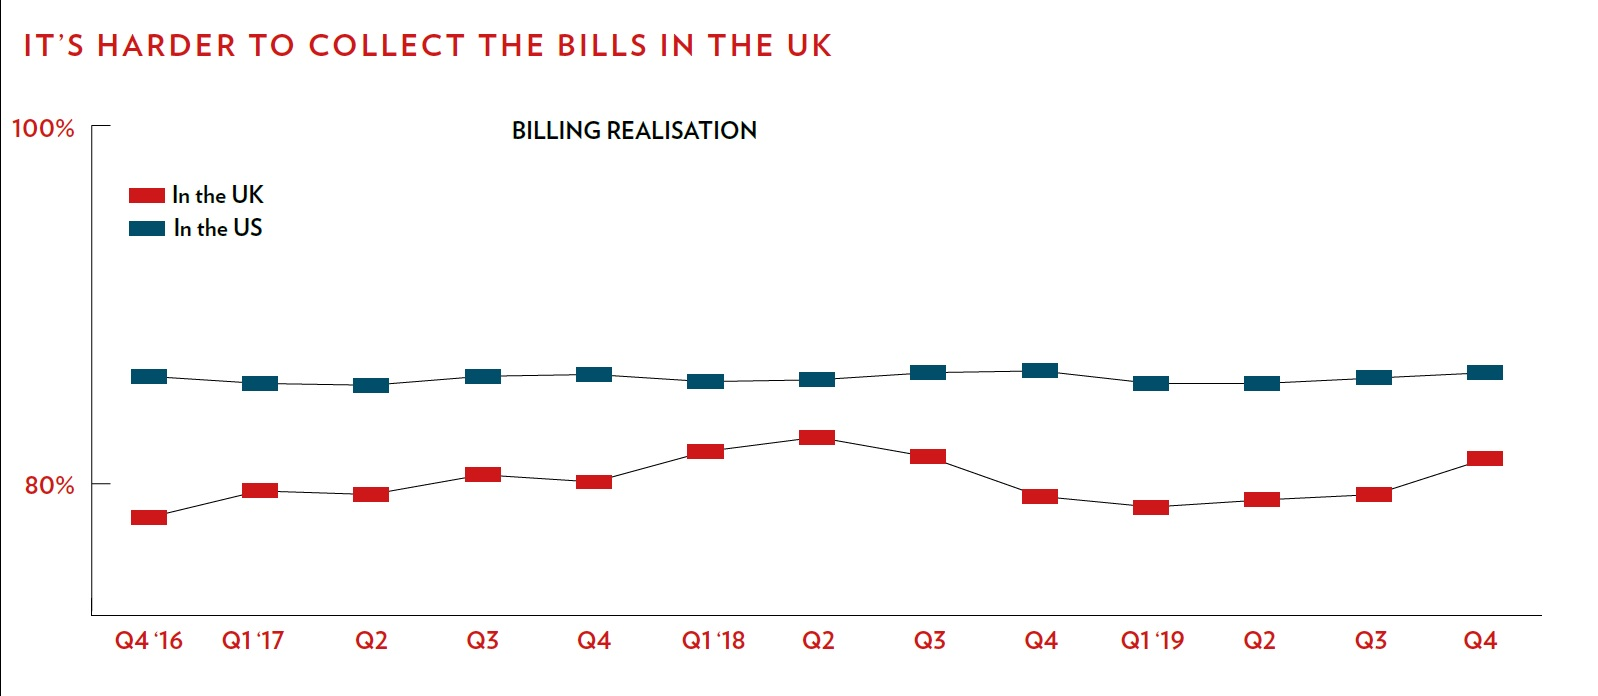 billing realisation rates